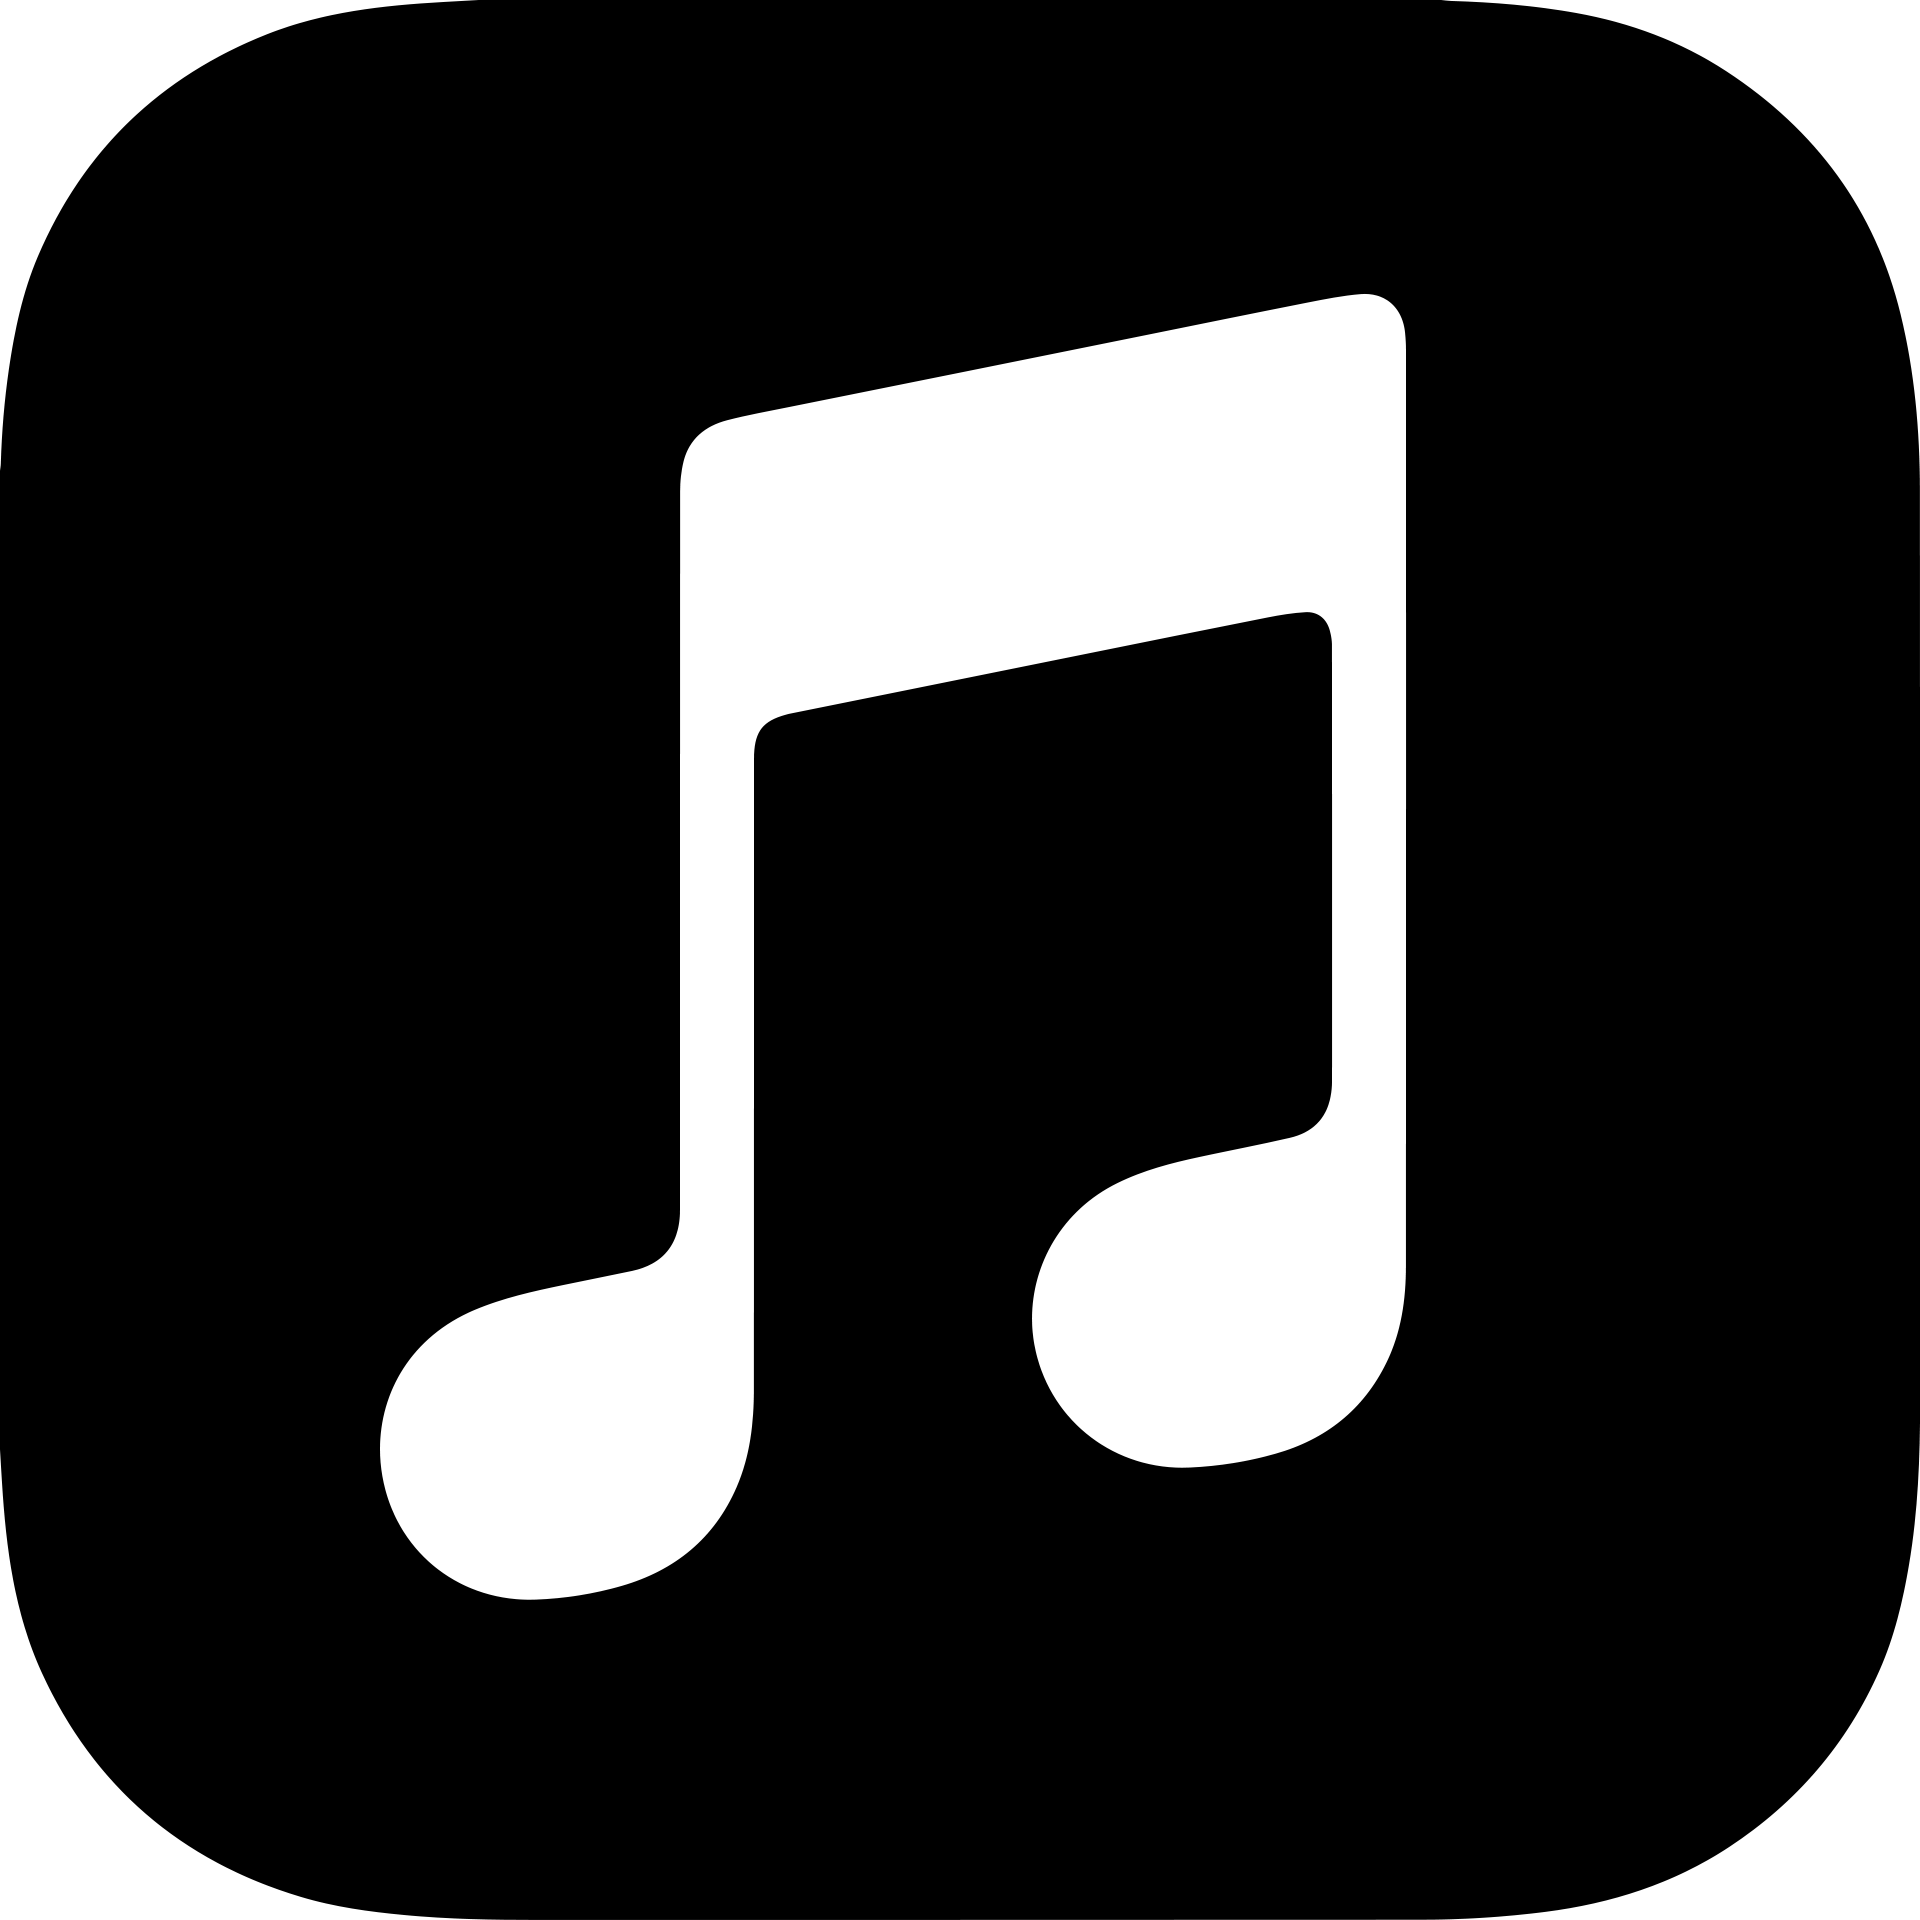 Apple_Music_Icon.png